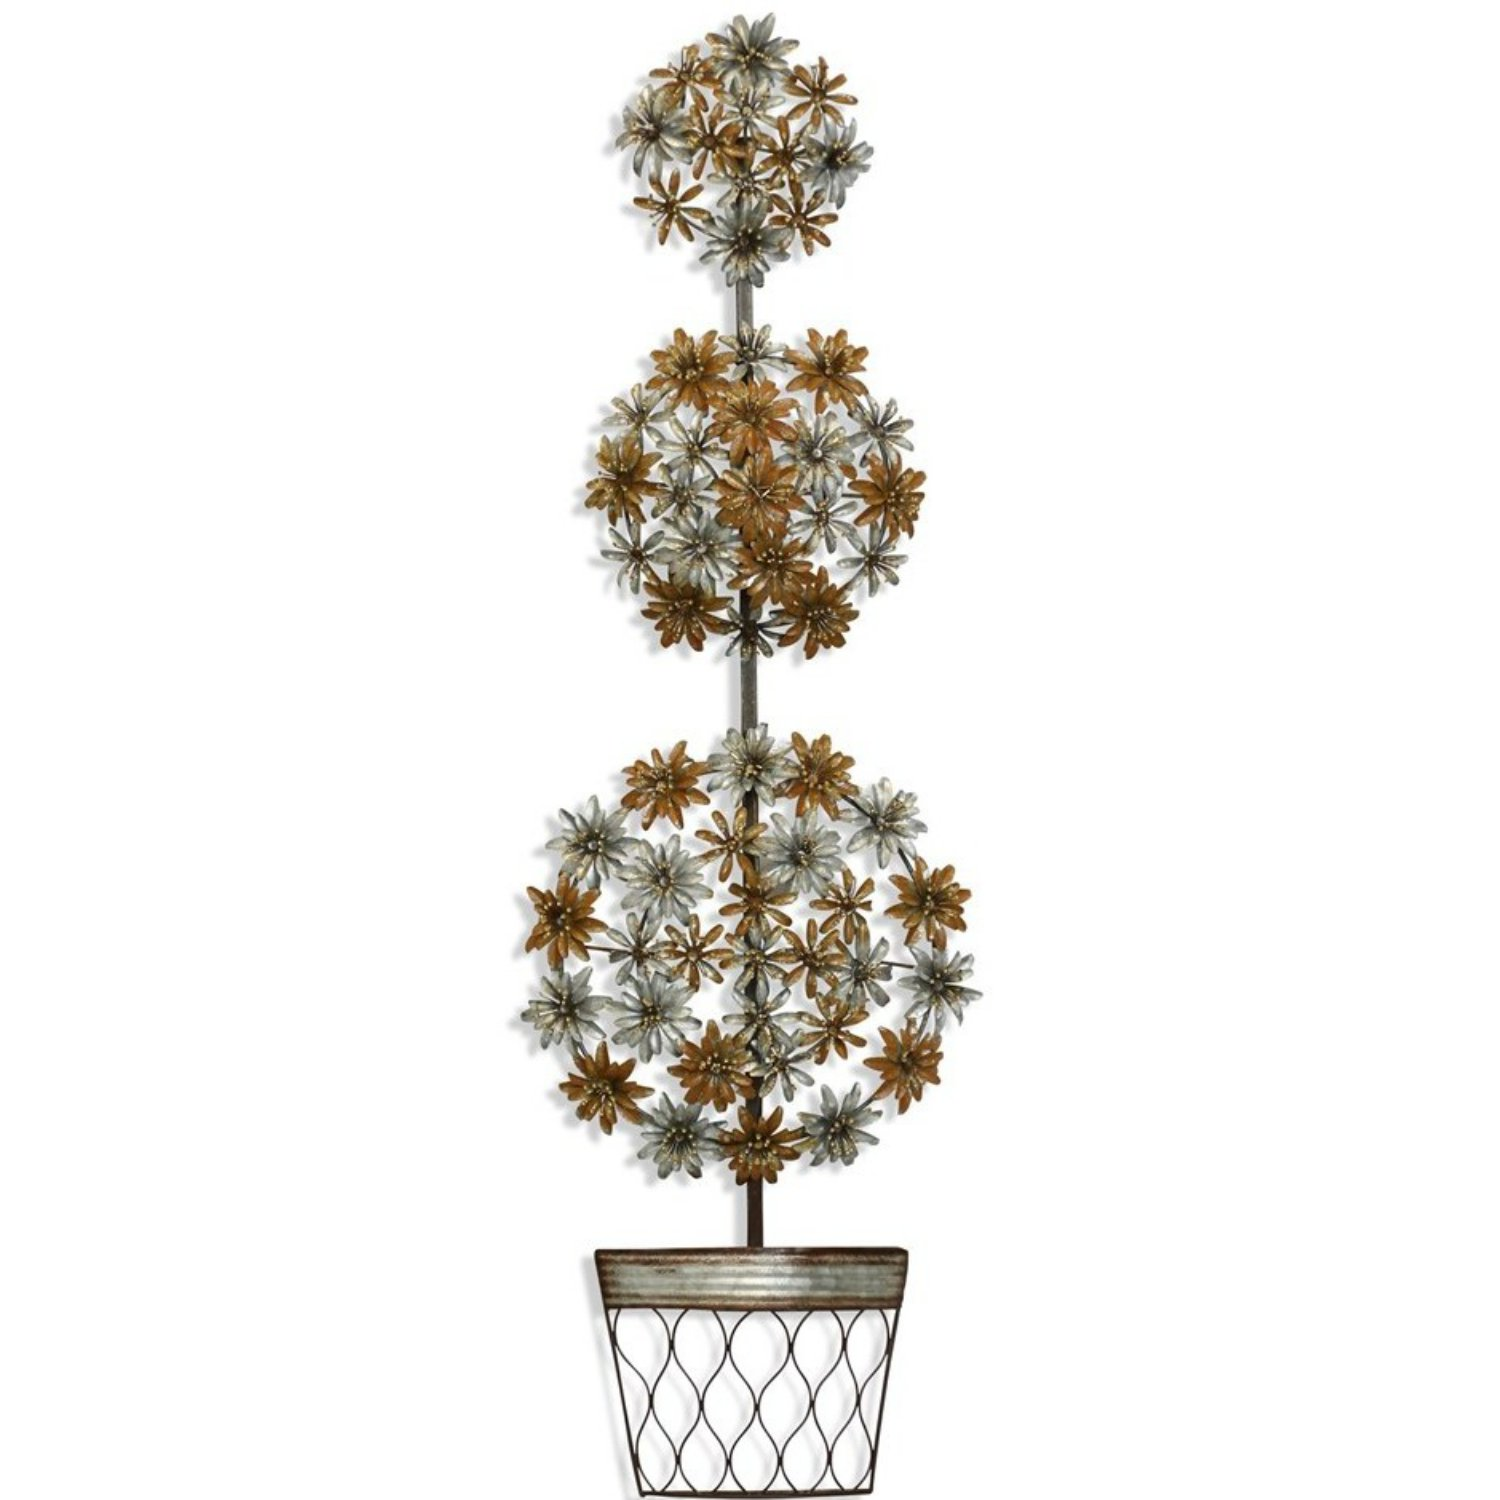 Potted-3-Ball-Topiary-Metal-Wall-Sculpture_71427A.jpg